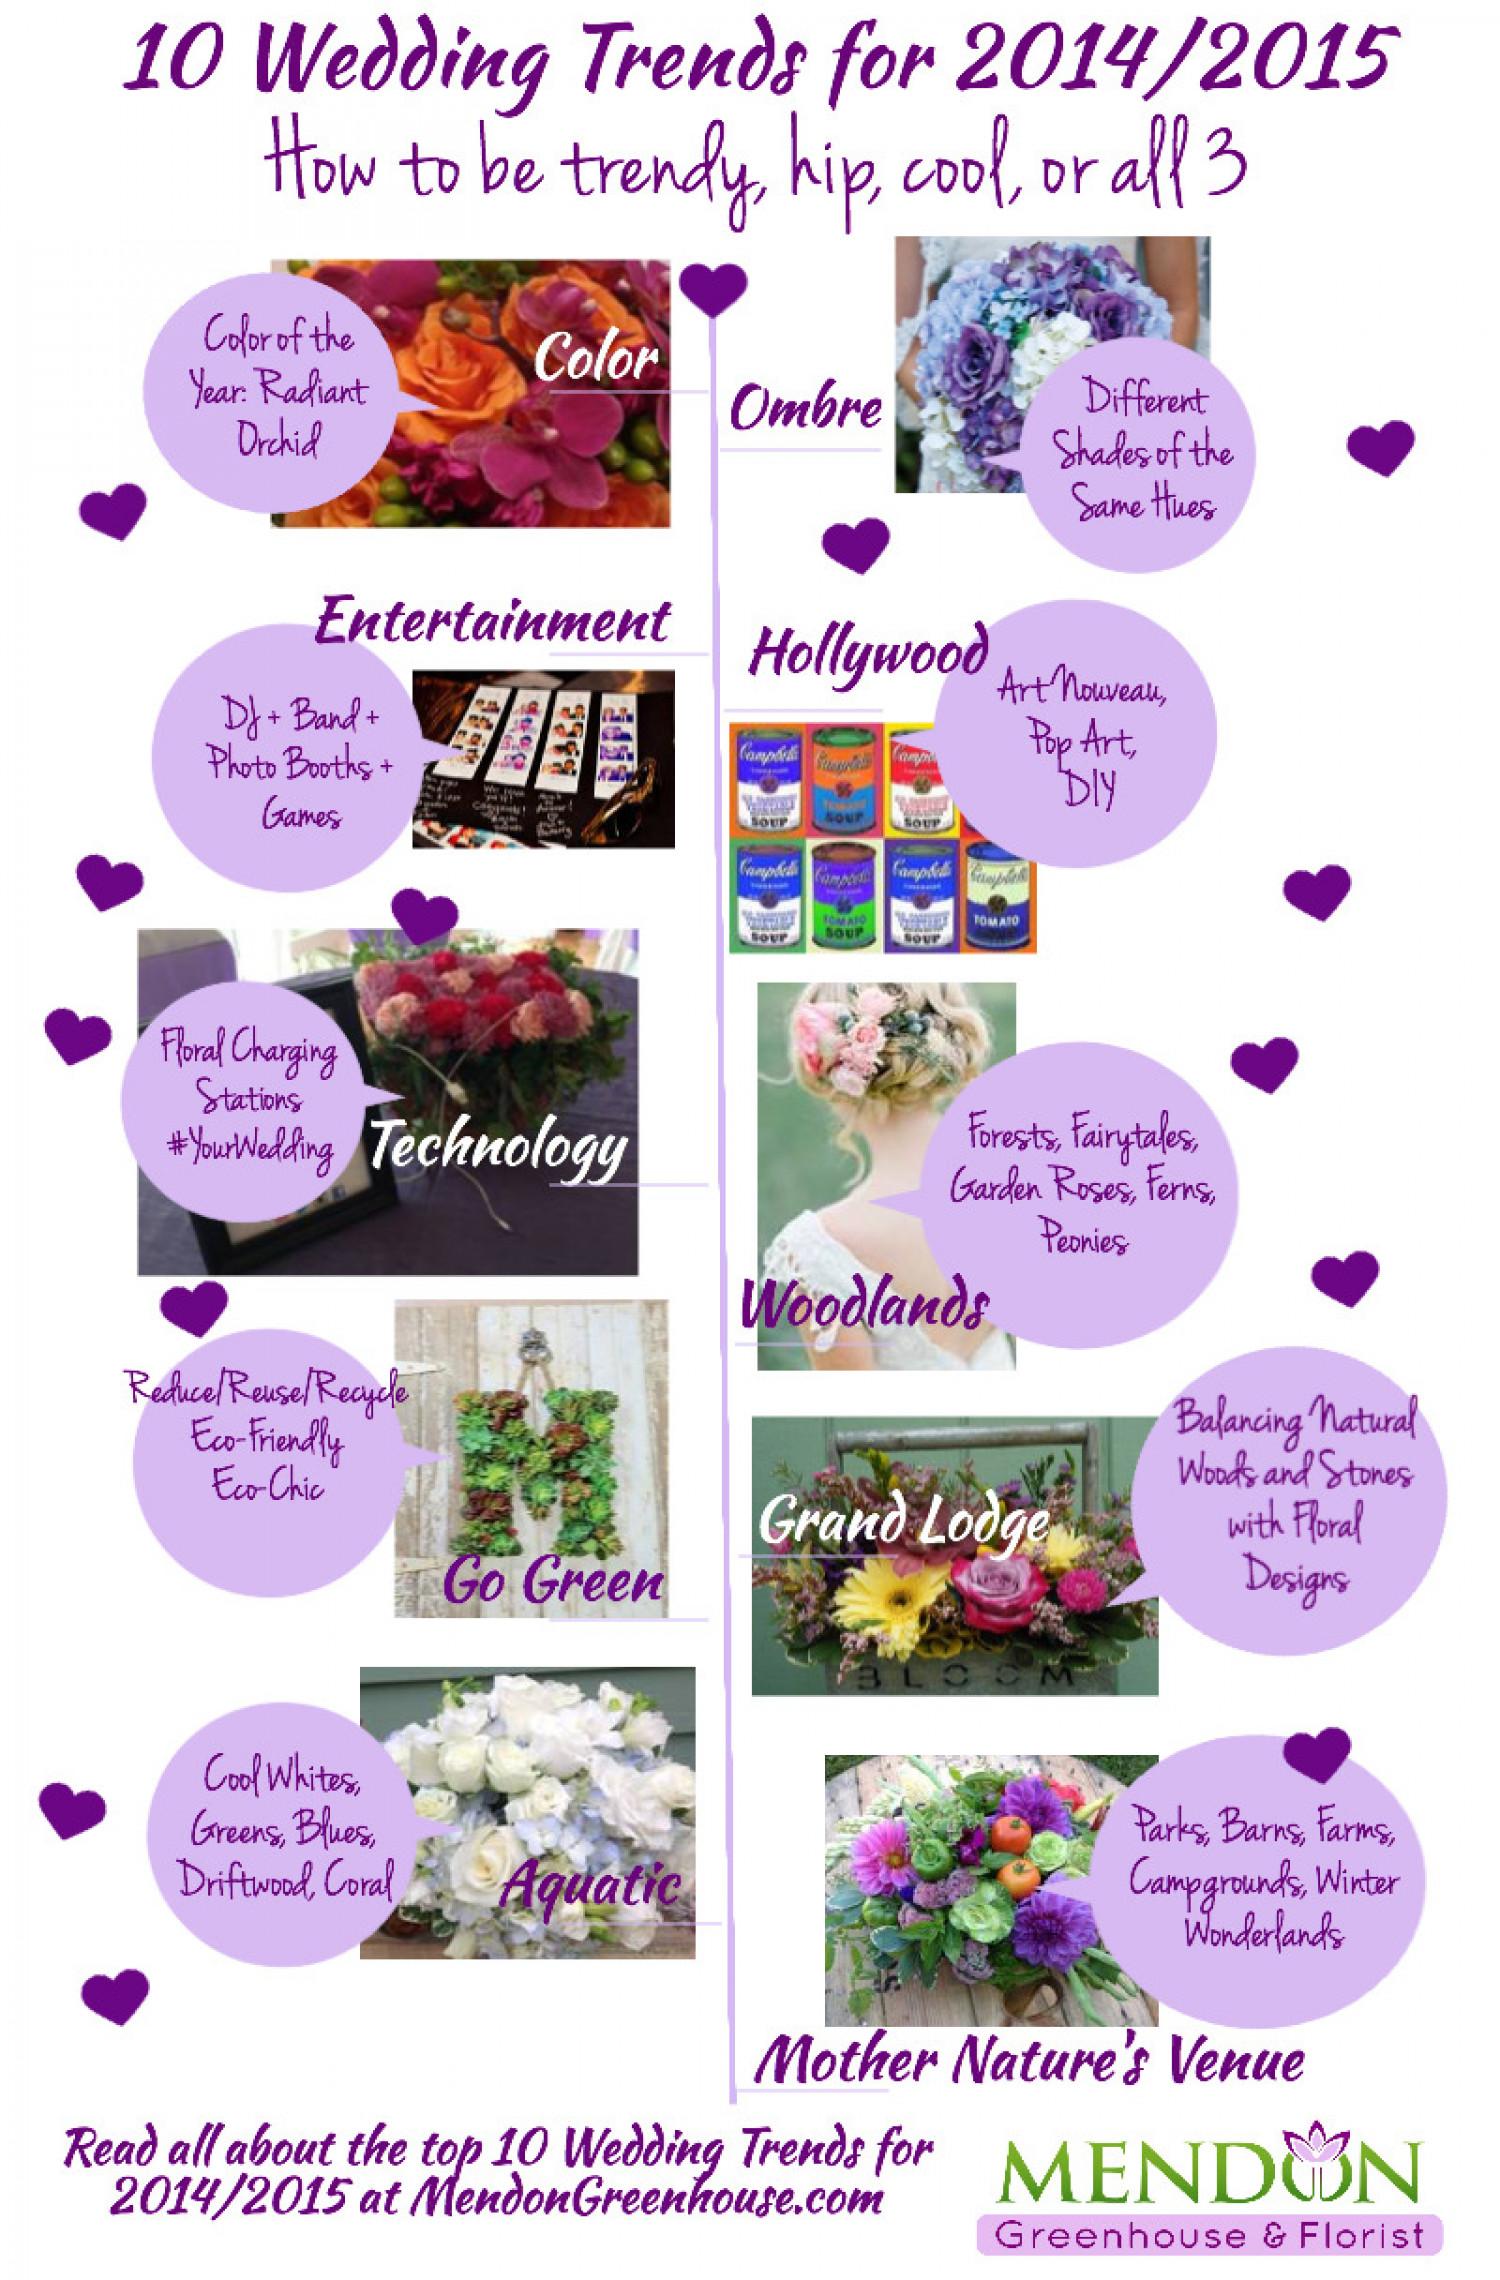 10 Wedding Trends for 2014-2015 Infographic